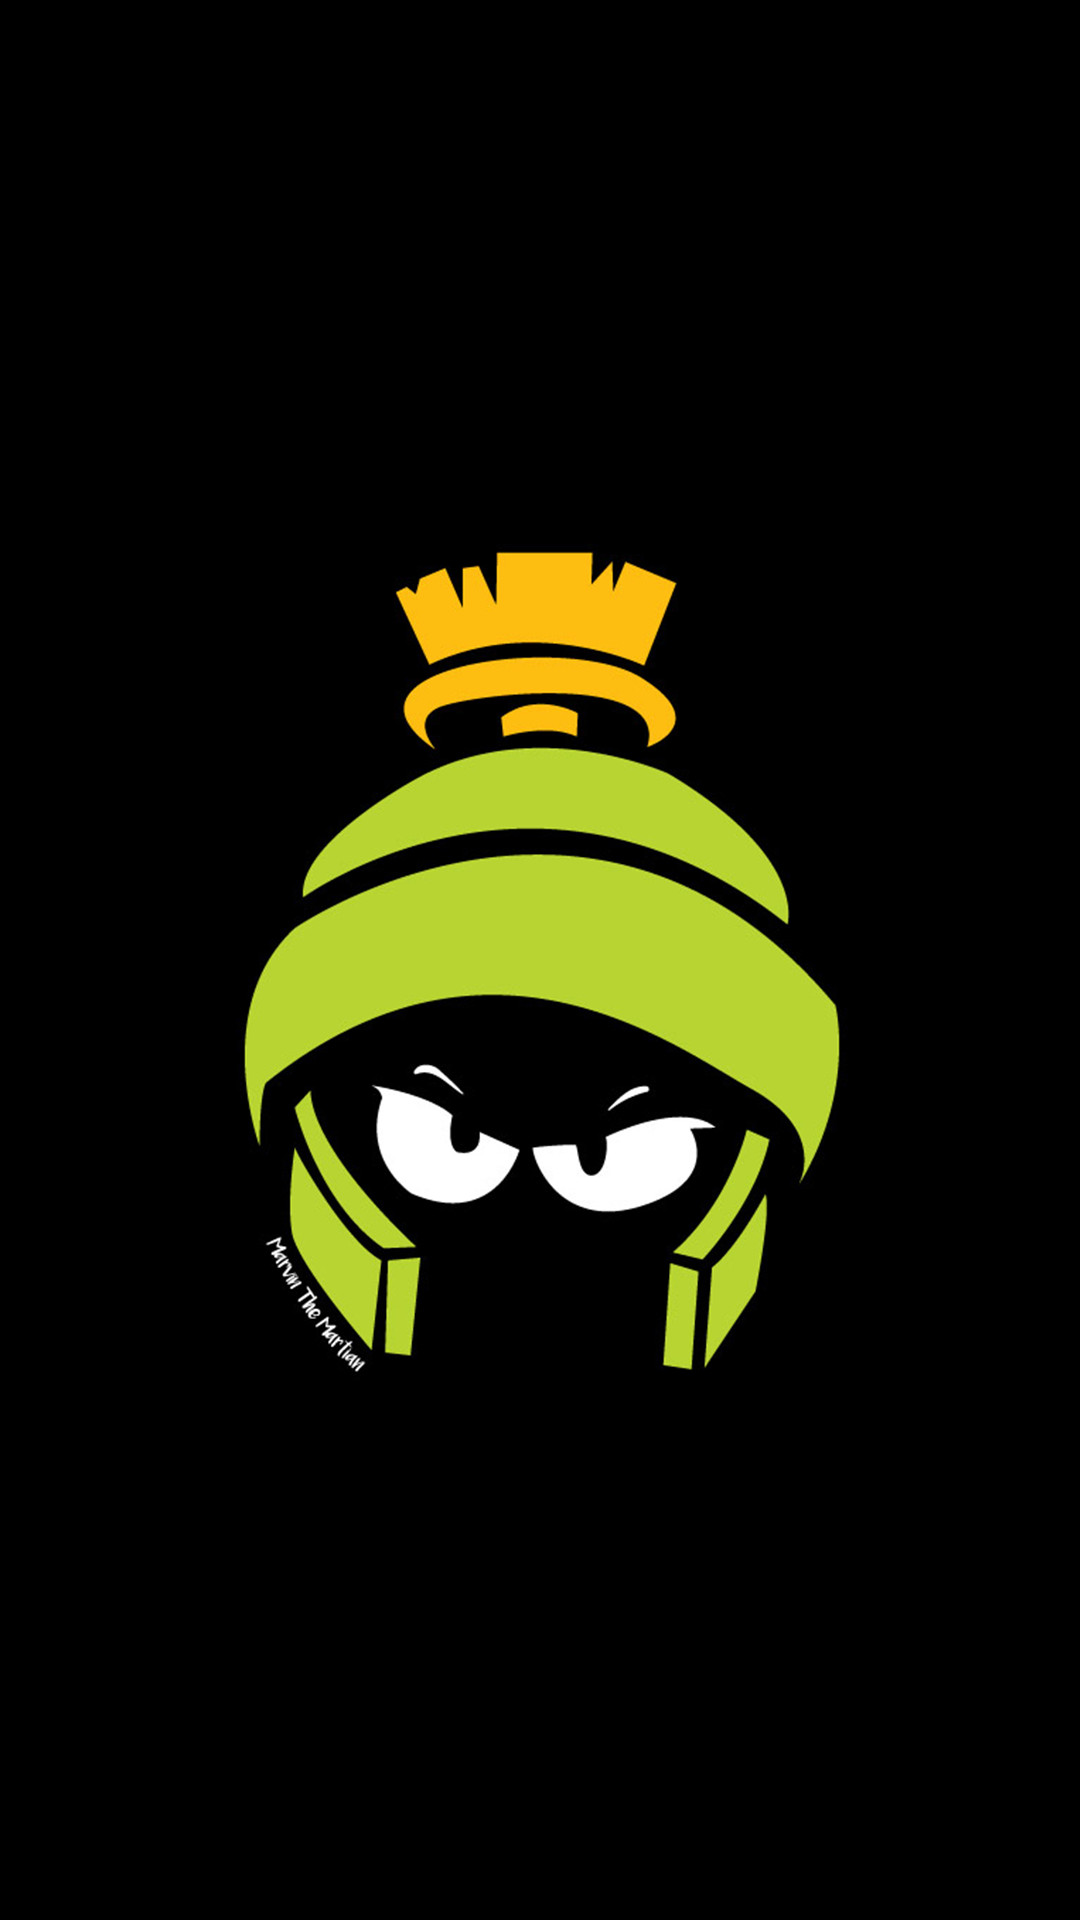 Marvin The Martian Wallpaper For Iphone Looney Tunes Wallpaper Windows 7 41 Images